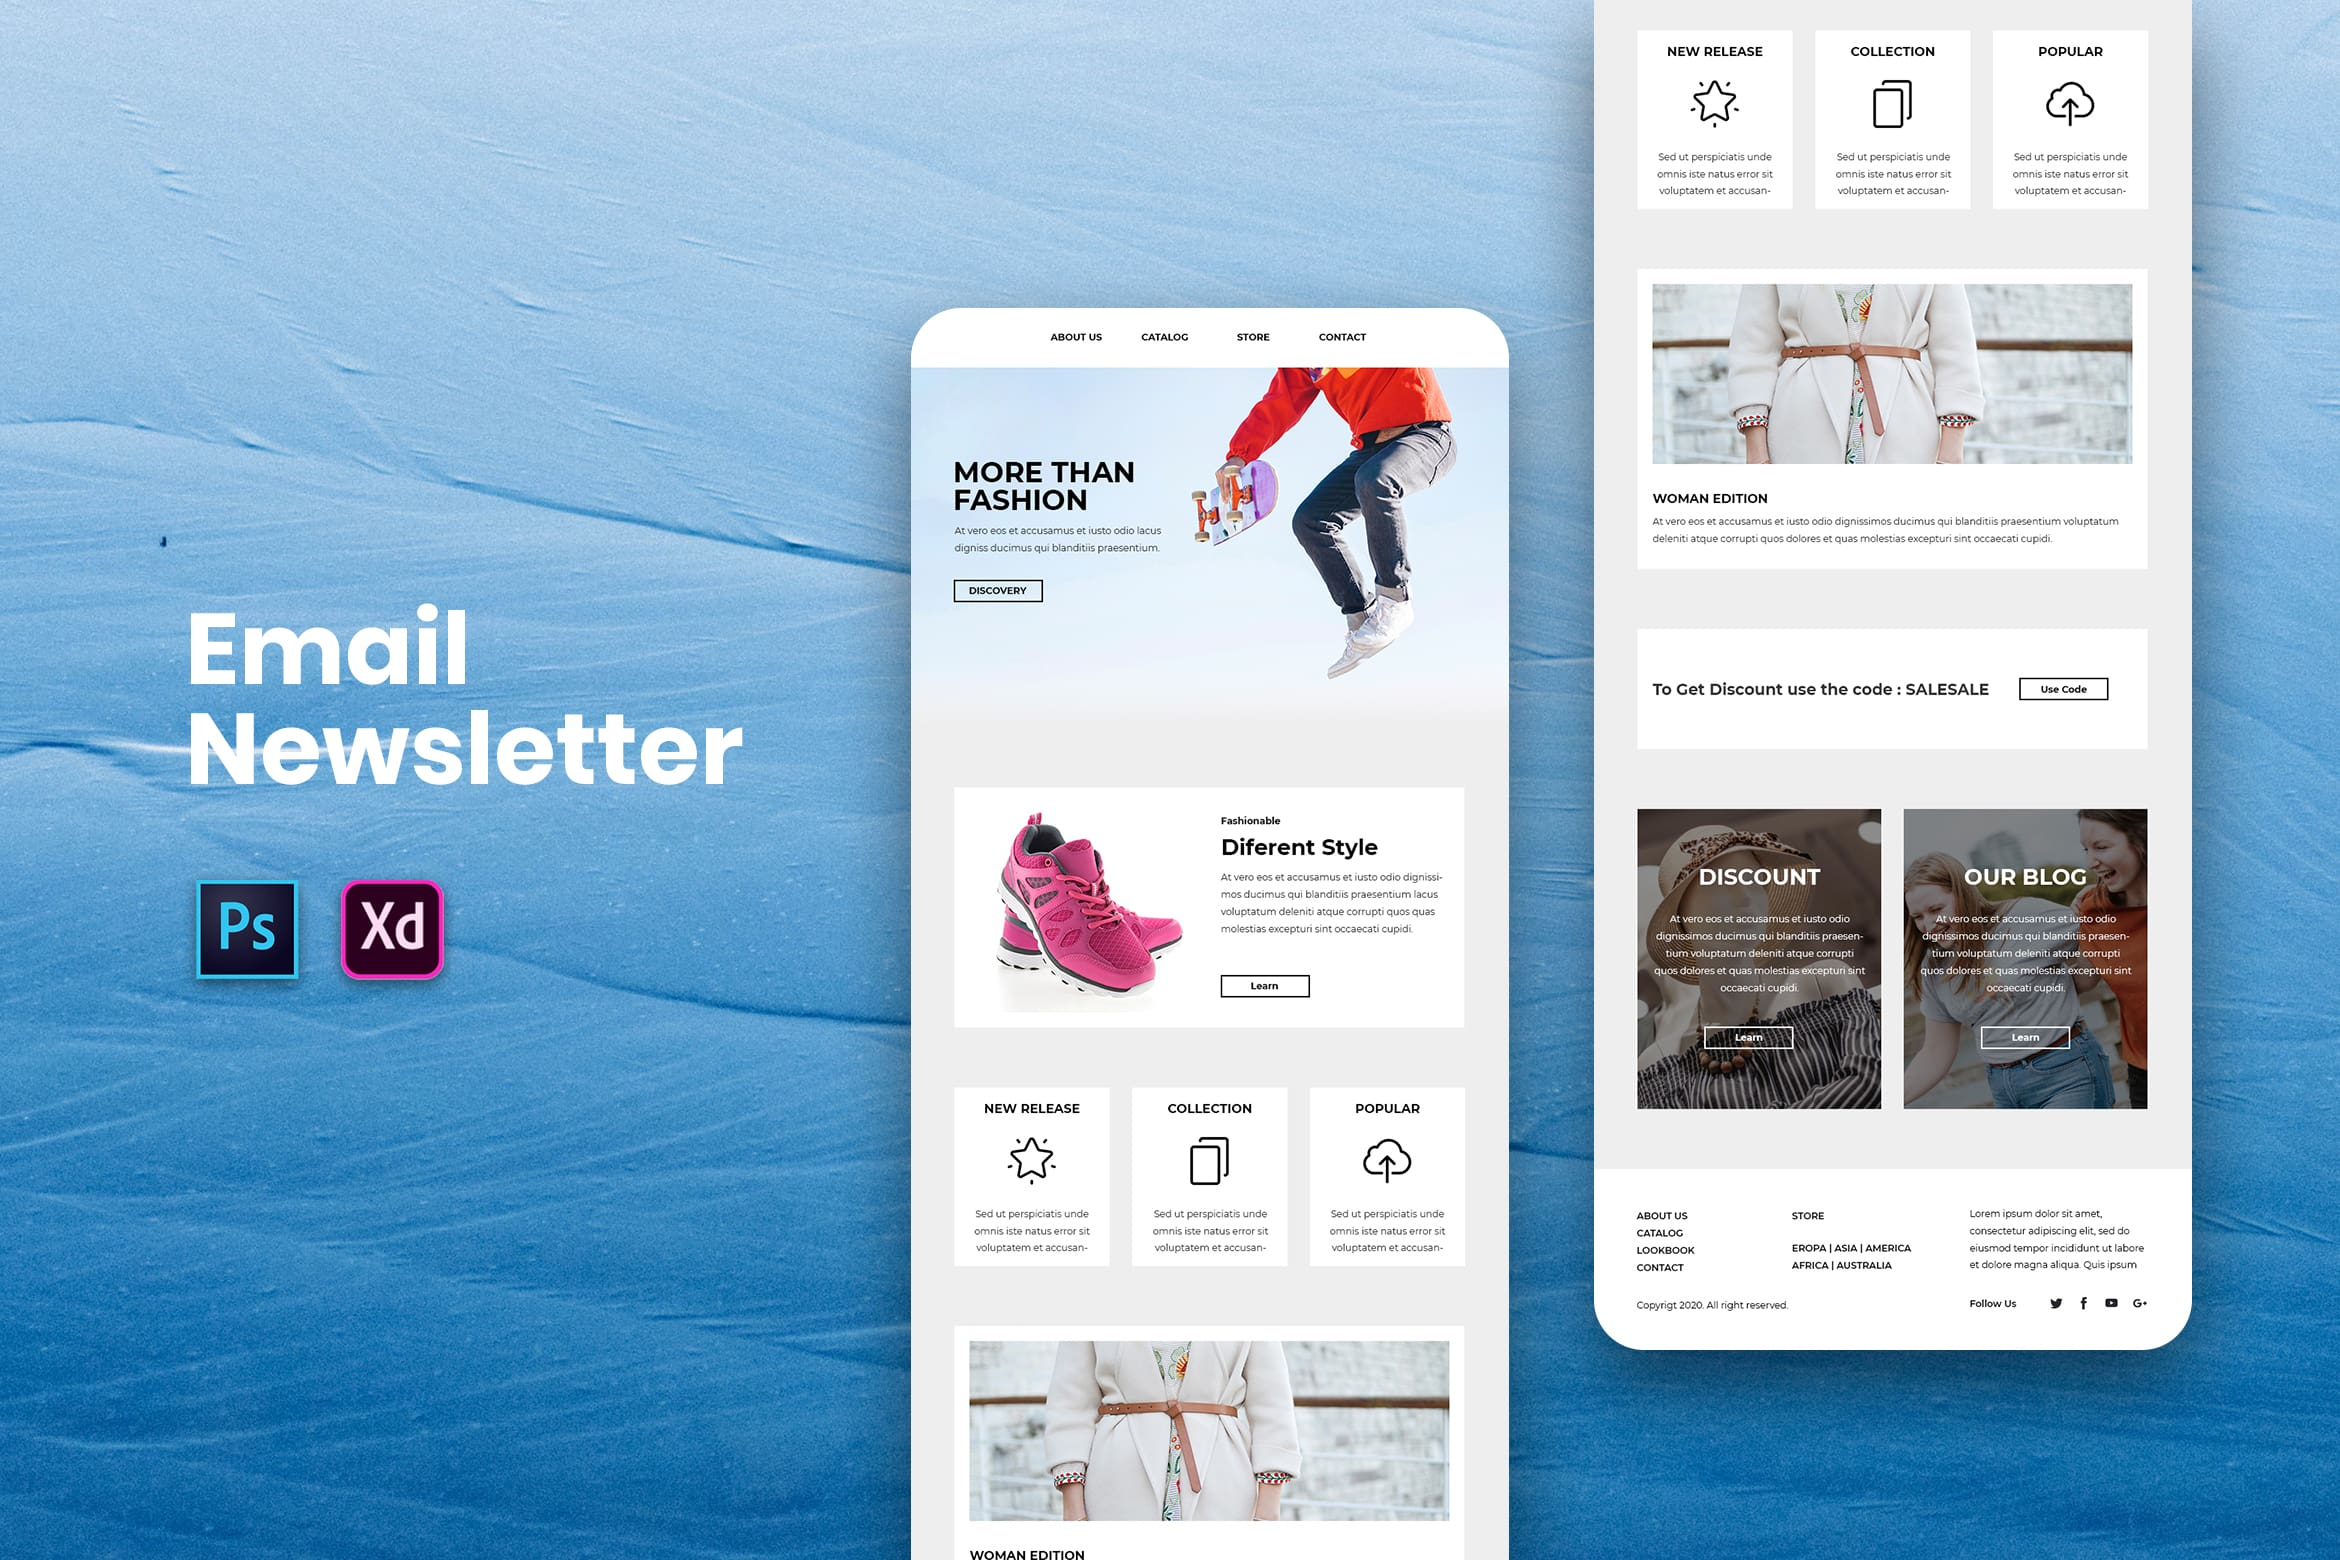 Different Fashion Style - Email Newsletter